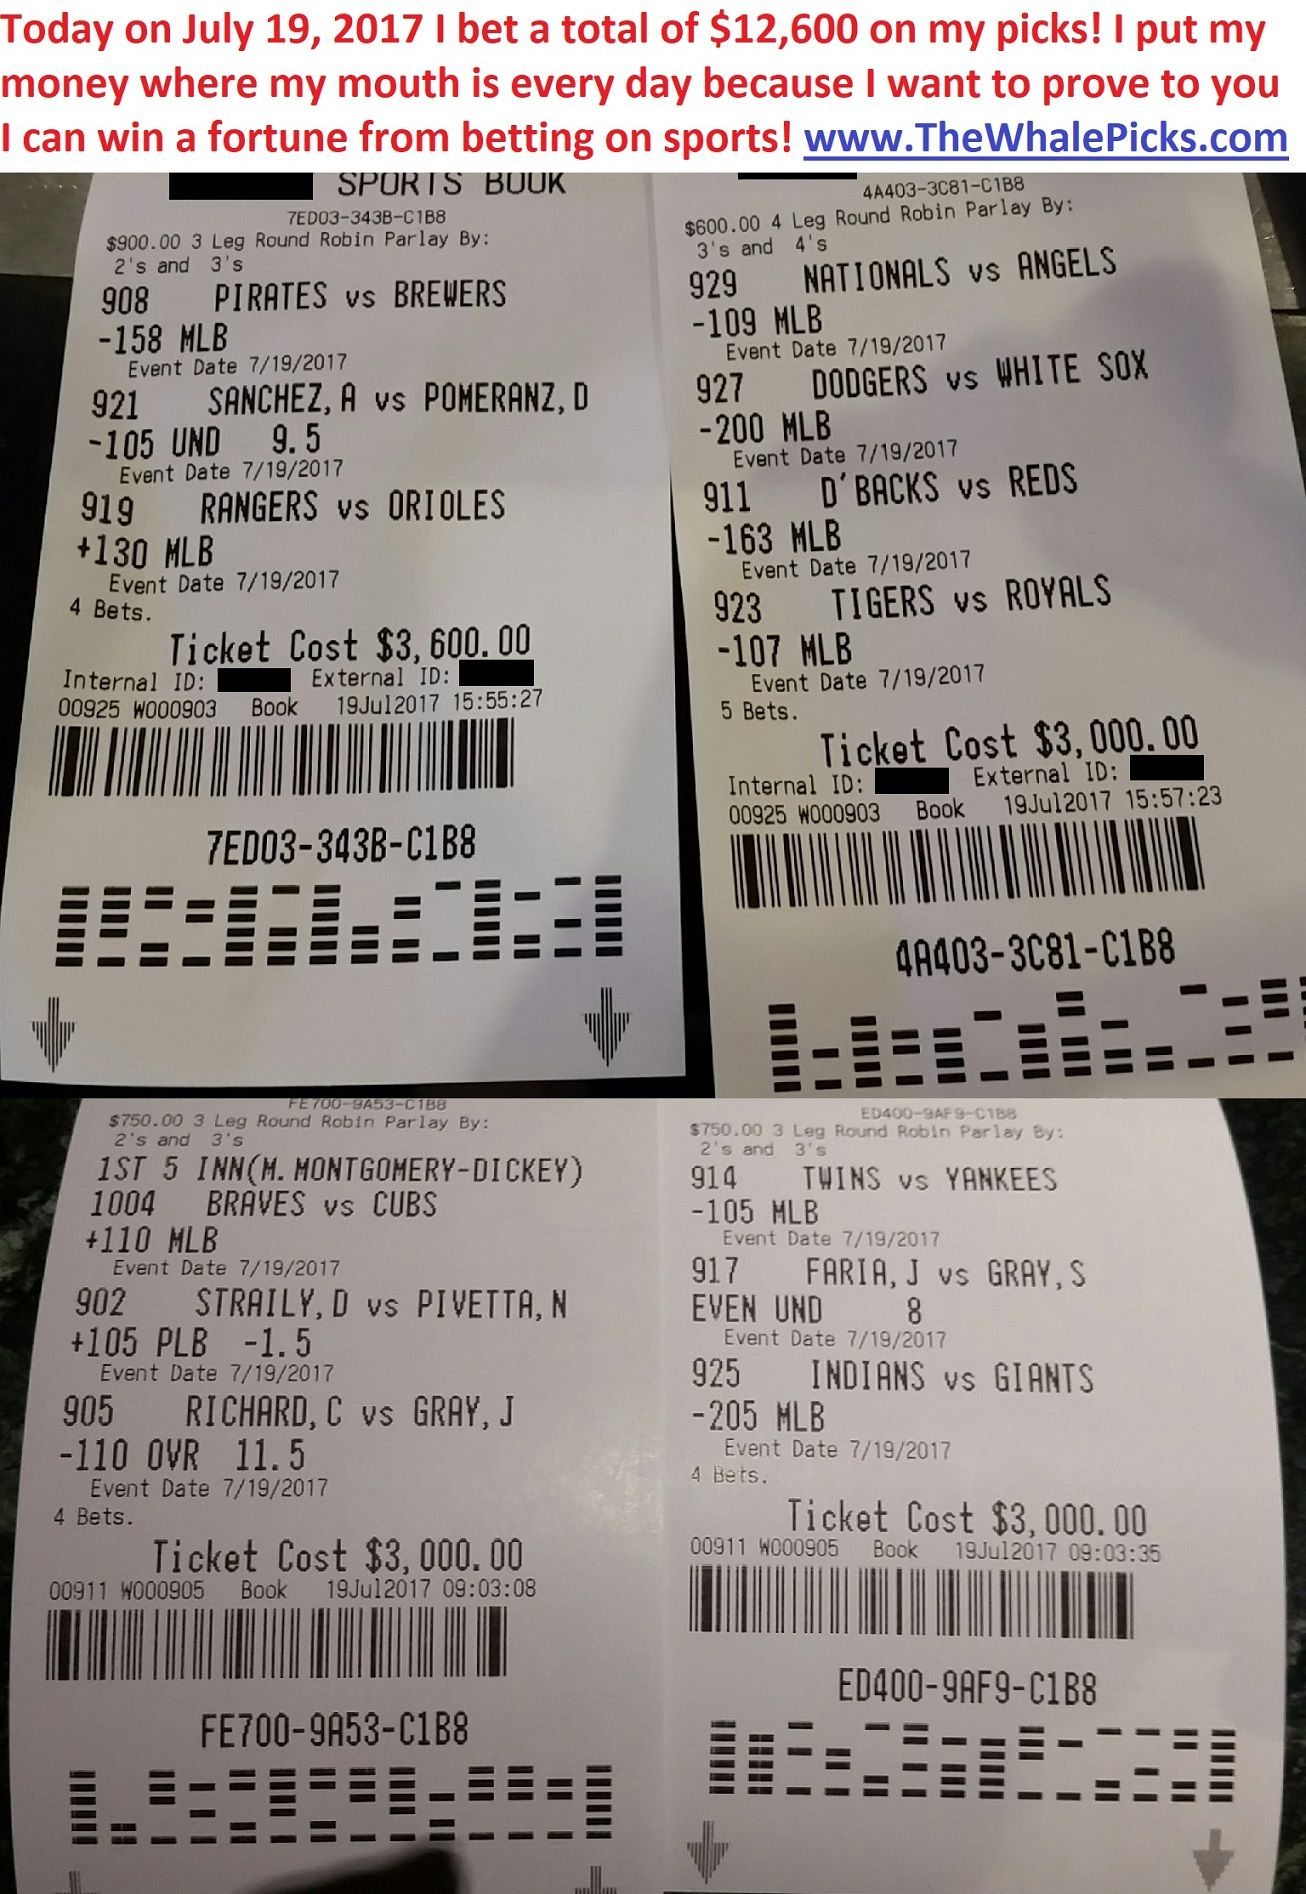 betting ticket of the day